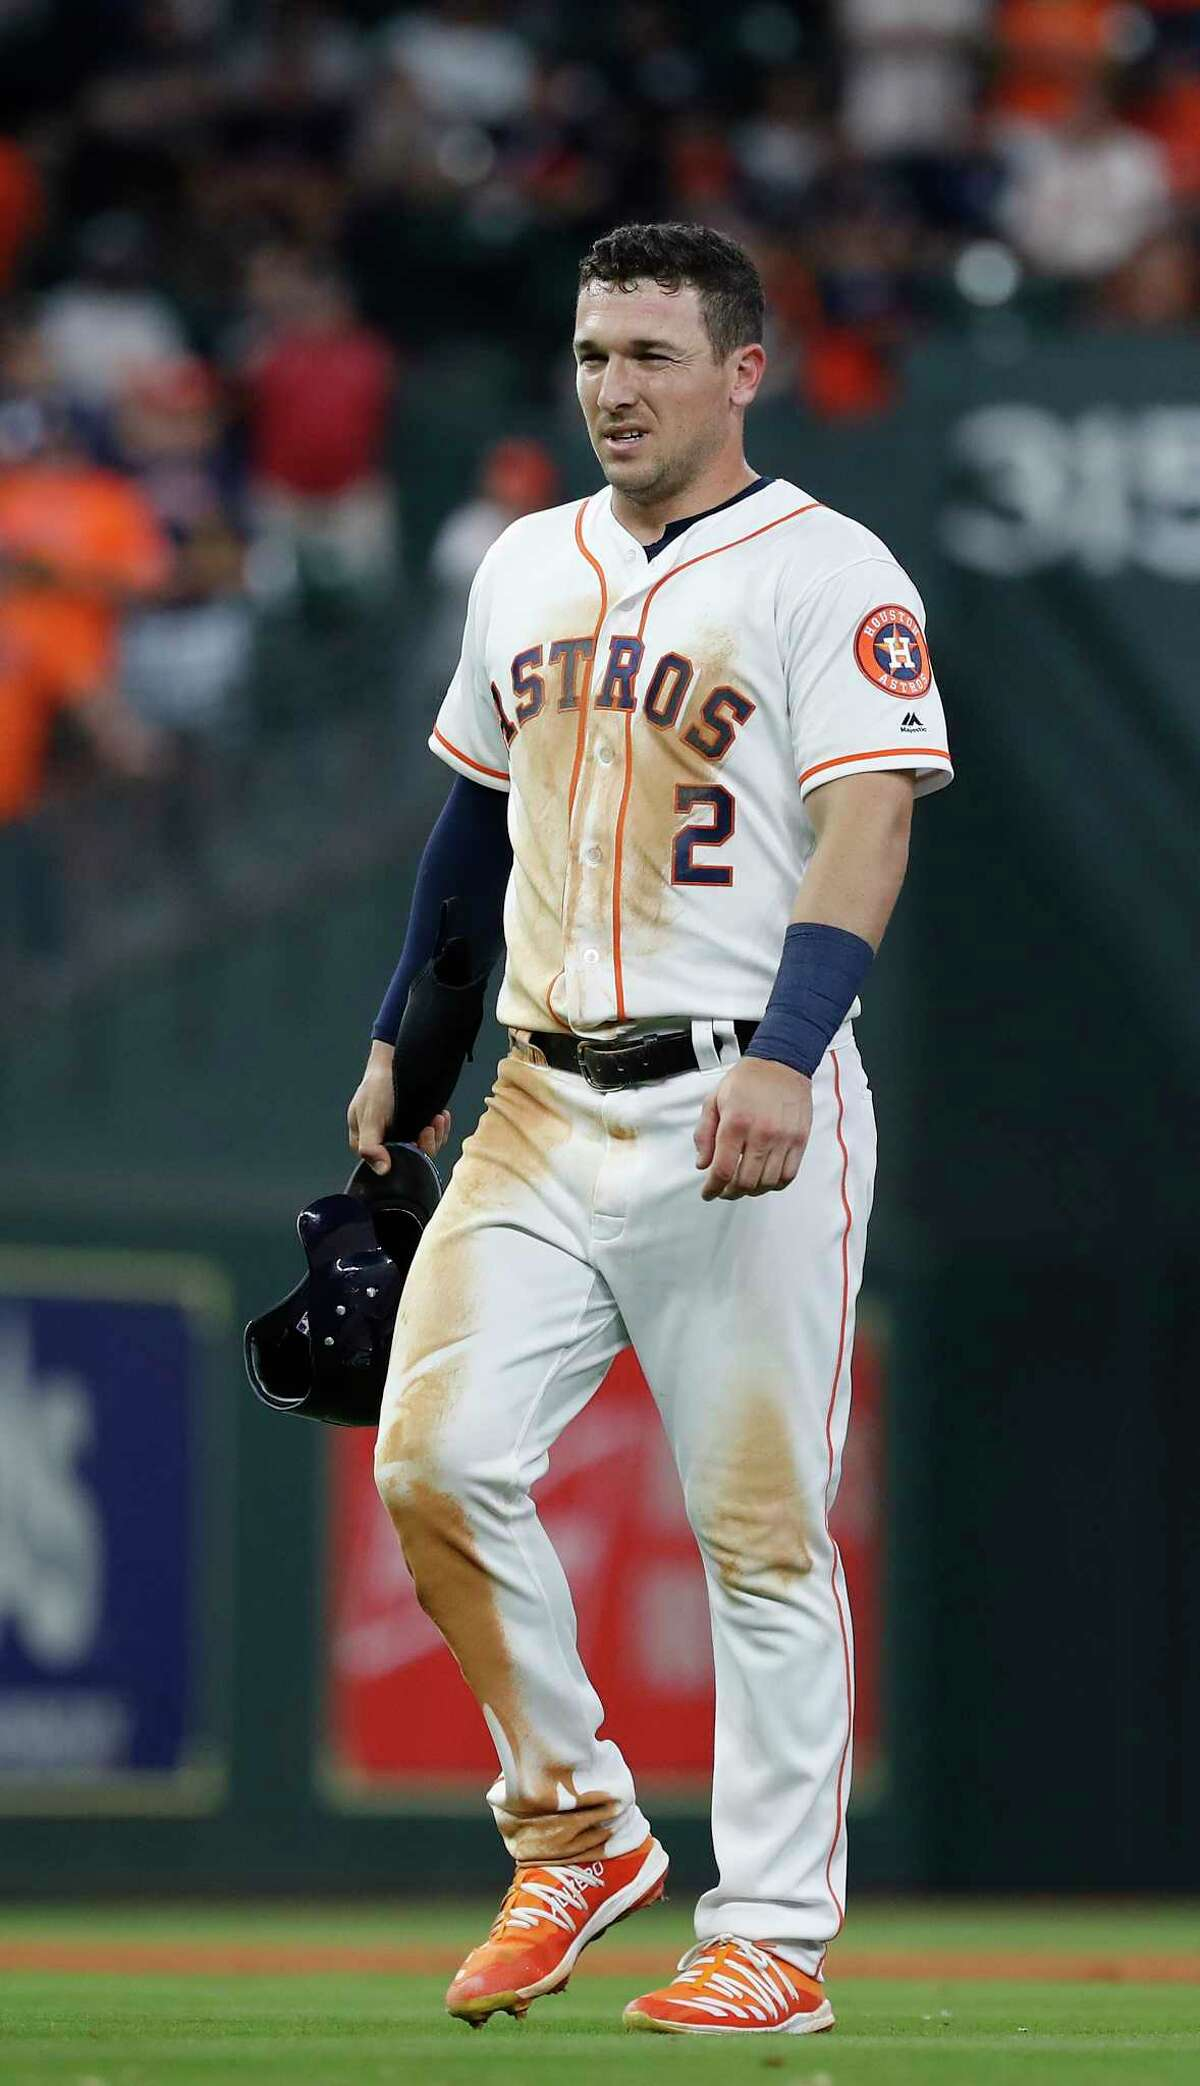 Houston Astros Alex Bregman (2) comes out of the game with a hamstring injury after taking second base on a defensive indifference during the eighth inning of an MLB game at Minute Maid Park, Tuesday, April 9, 2019, in Houston.